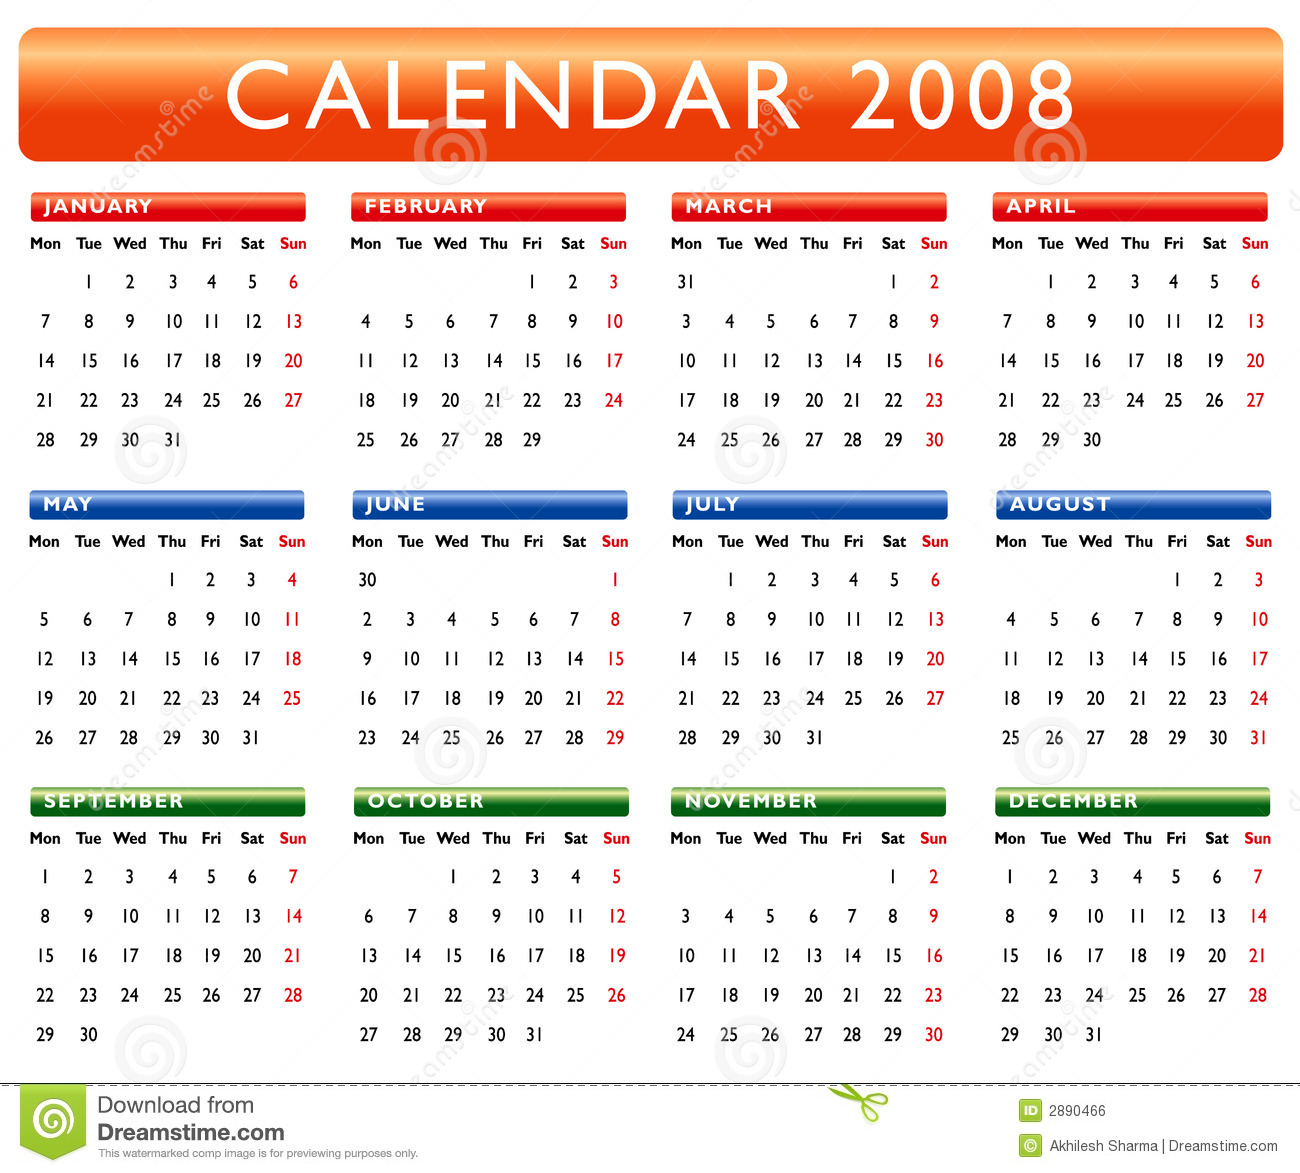 Calendar 2008 Royalty Free Stock Image - Image: 2890466